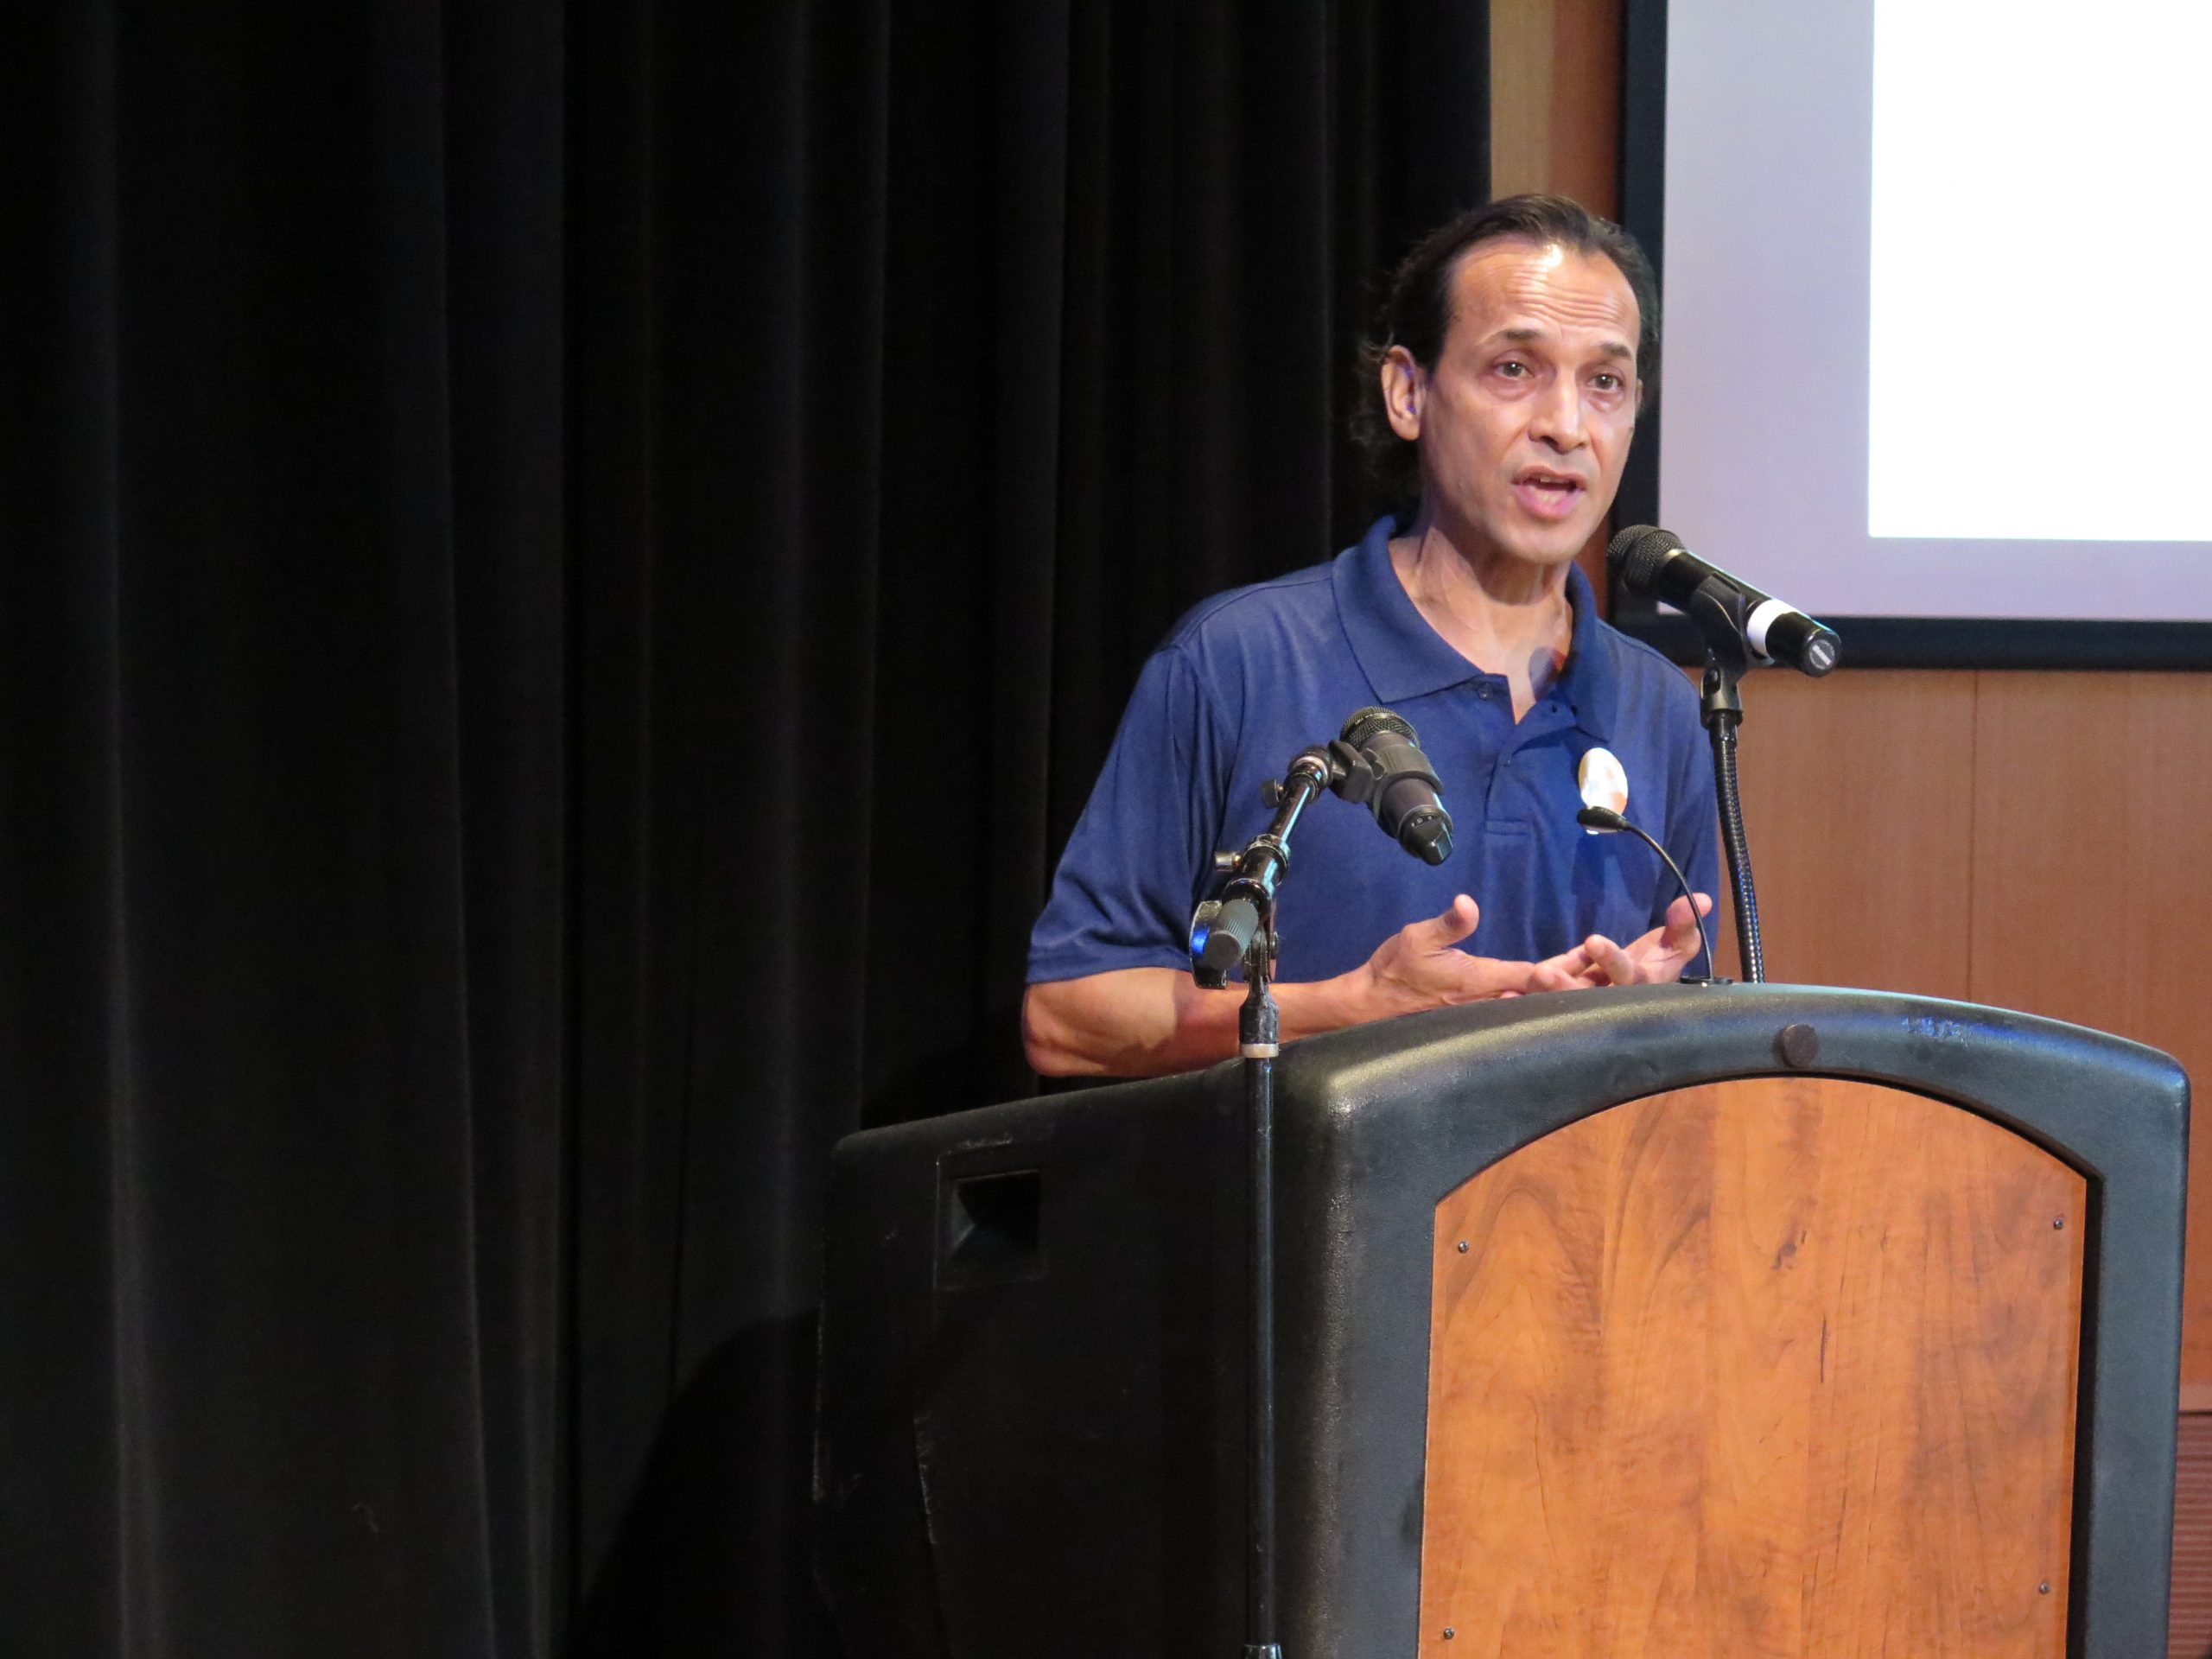 Artist Jesse Borrego talks about the diversity of artists at this year's Luminaria. Photo by Rocío Guenther.